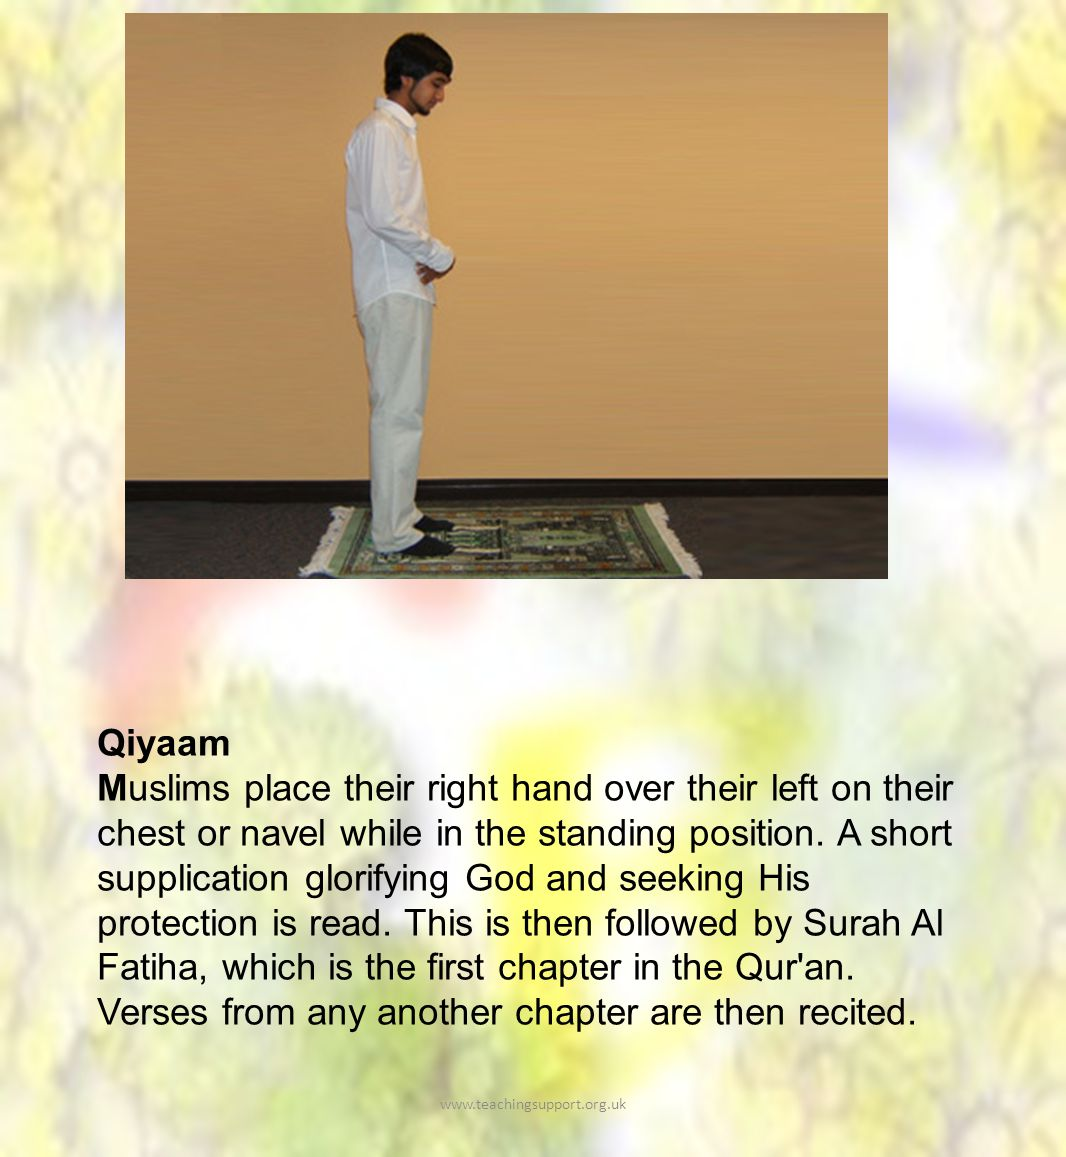 Qiyaam Muslims place their right hand over their left on their chest or navel while in the standing position.